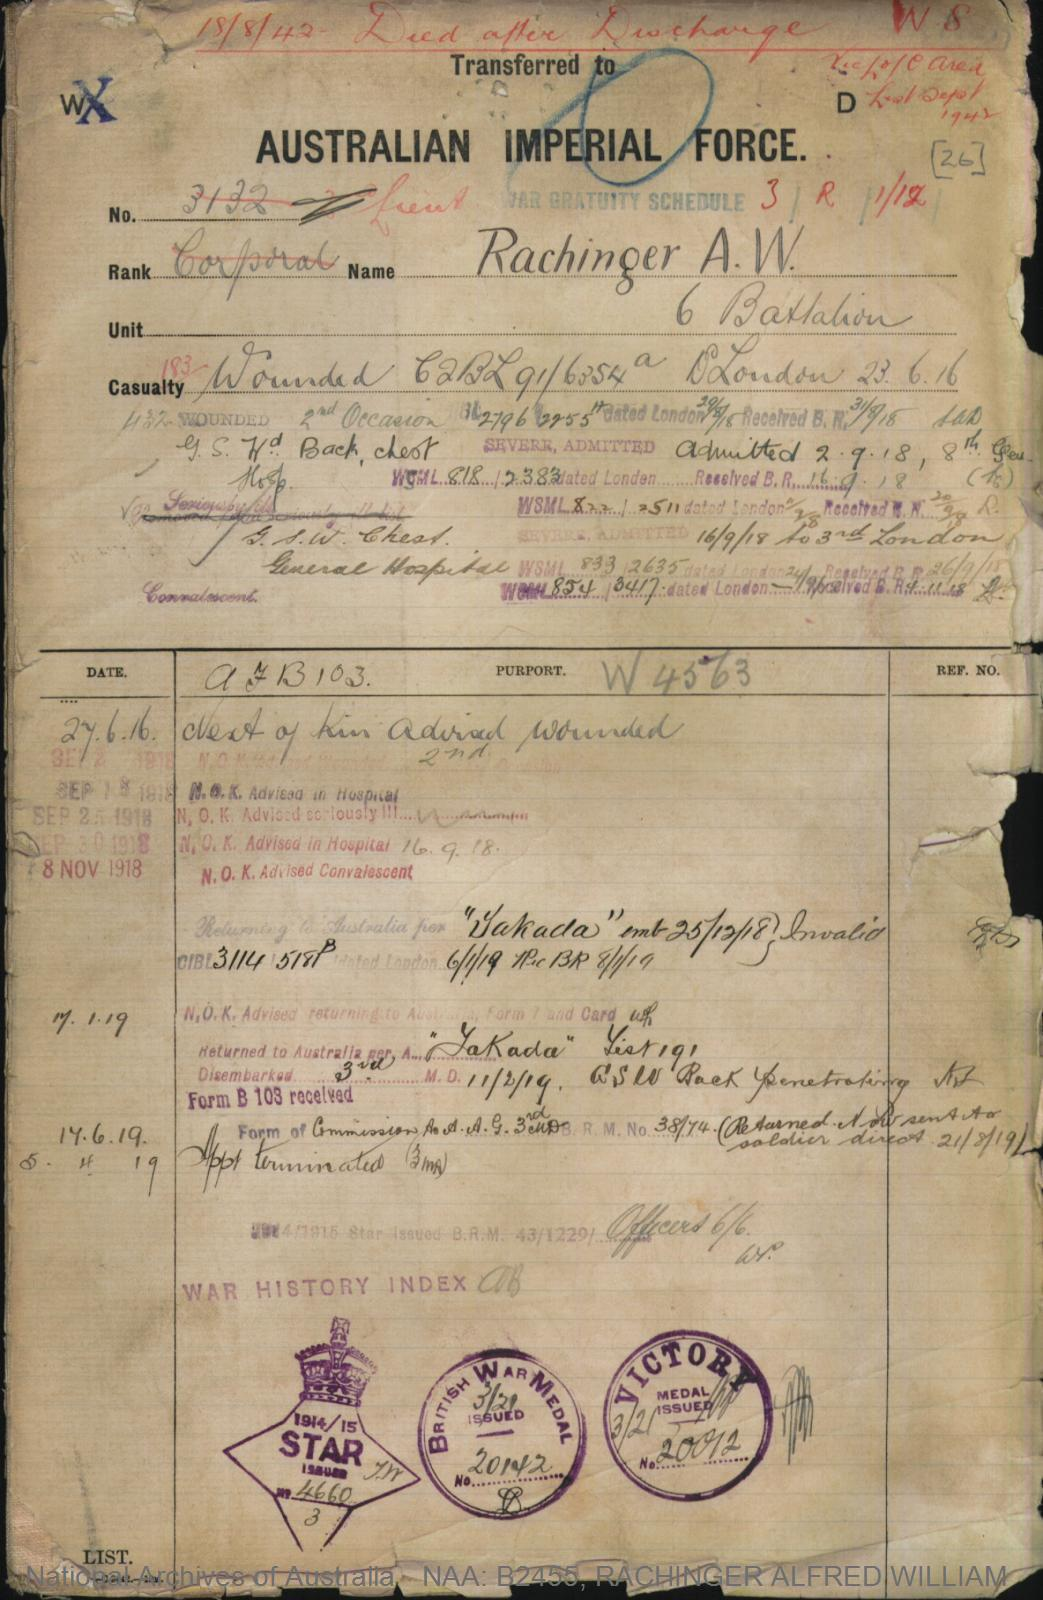 RACHINGER Alfred William : Service Number - Lieutenant : Place of Birth - Creswick VIC : Place of Enlistment - Melbourne VIC : Next of Kin - (Father) RACHINGER James